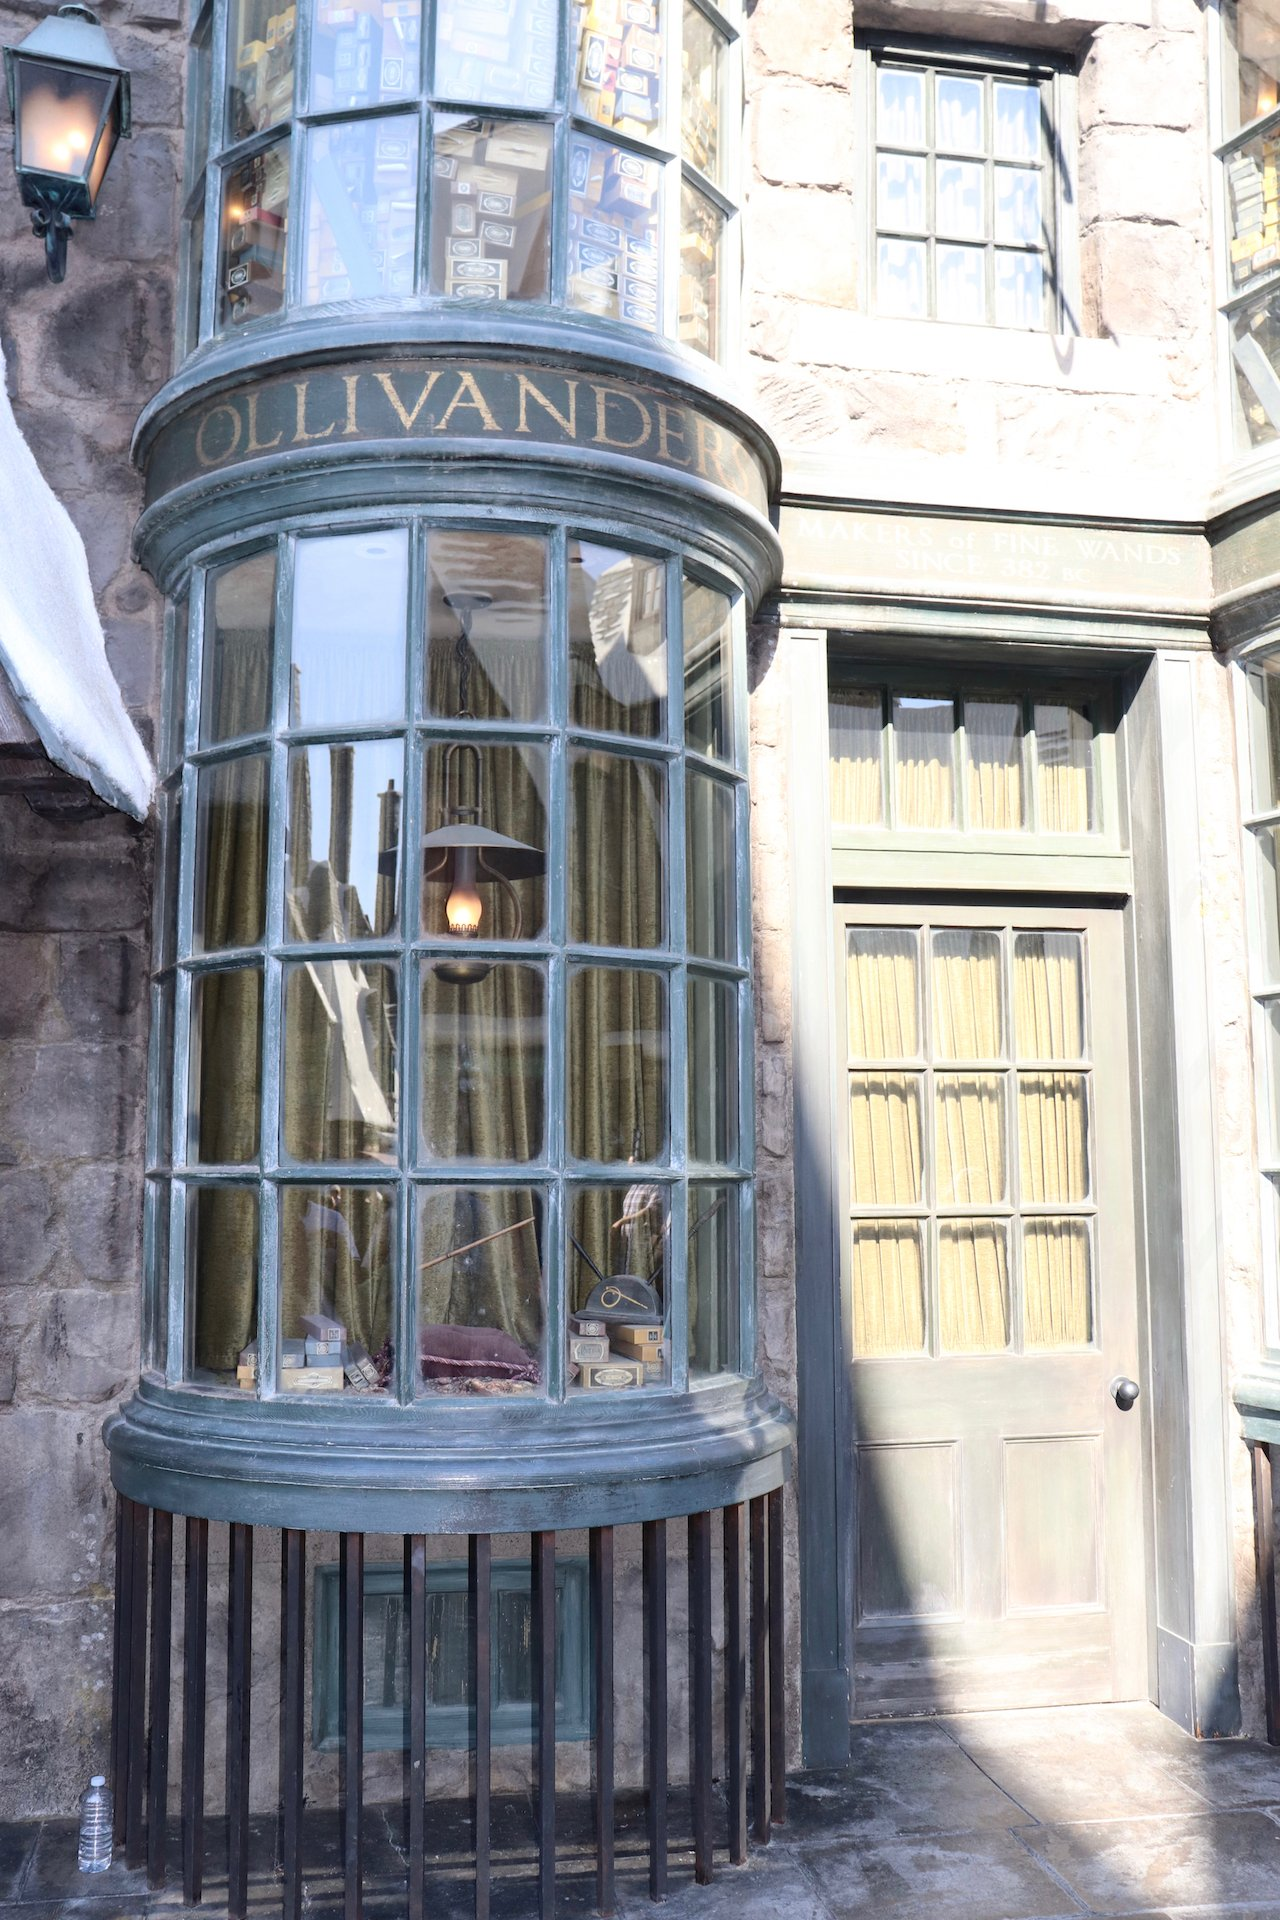 Universal Studios Hollywood Wizarding World Of Harry Potter Ollivander's